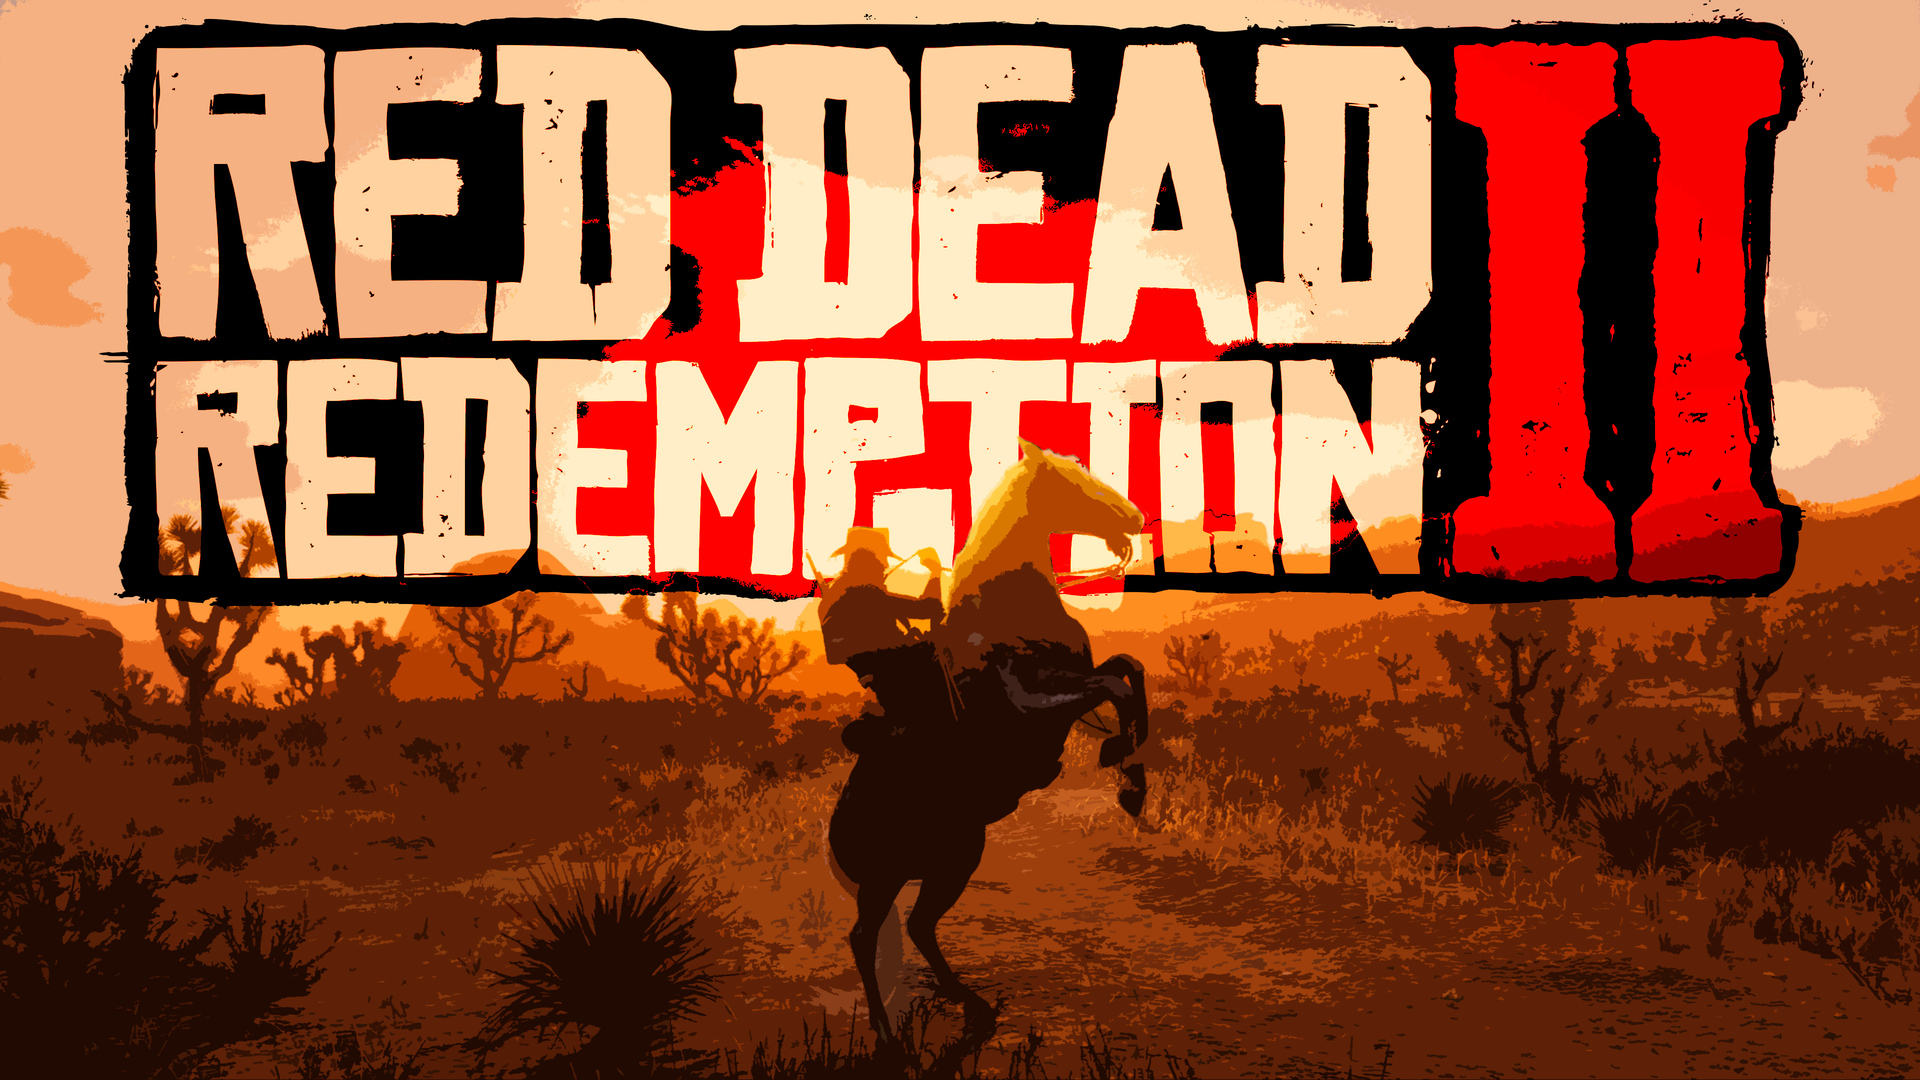 1920x1080 Red Dead Redemption 2 4k 2019 Game Laptop Full Hd 1080p